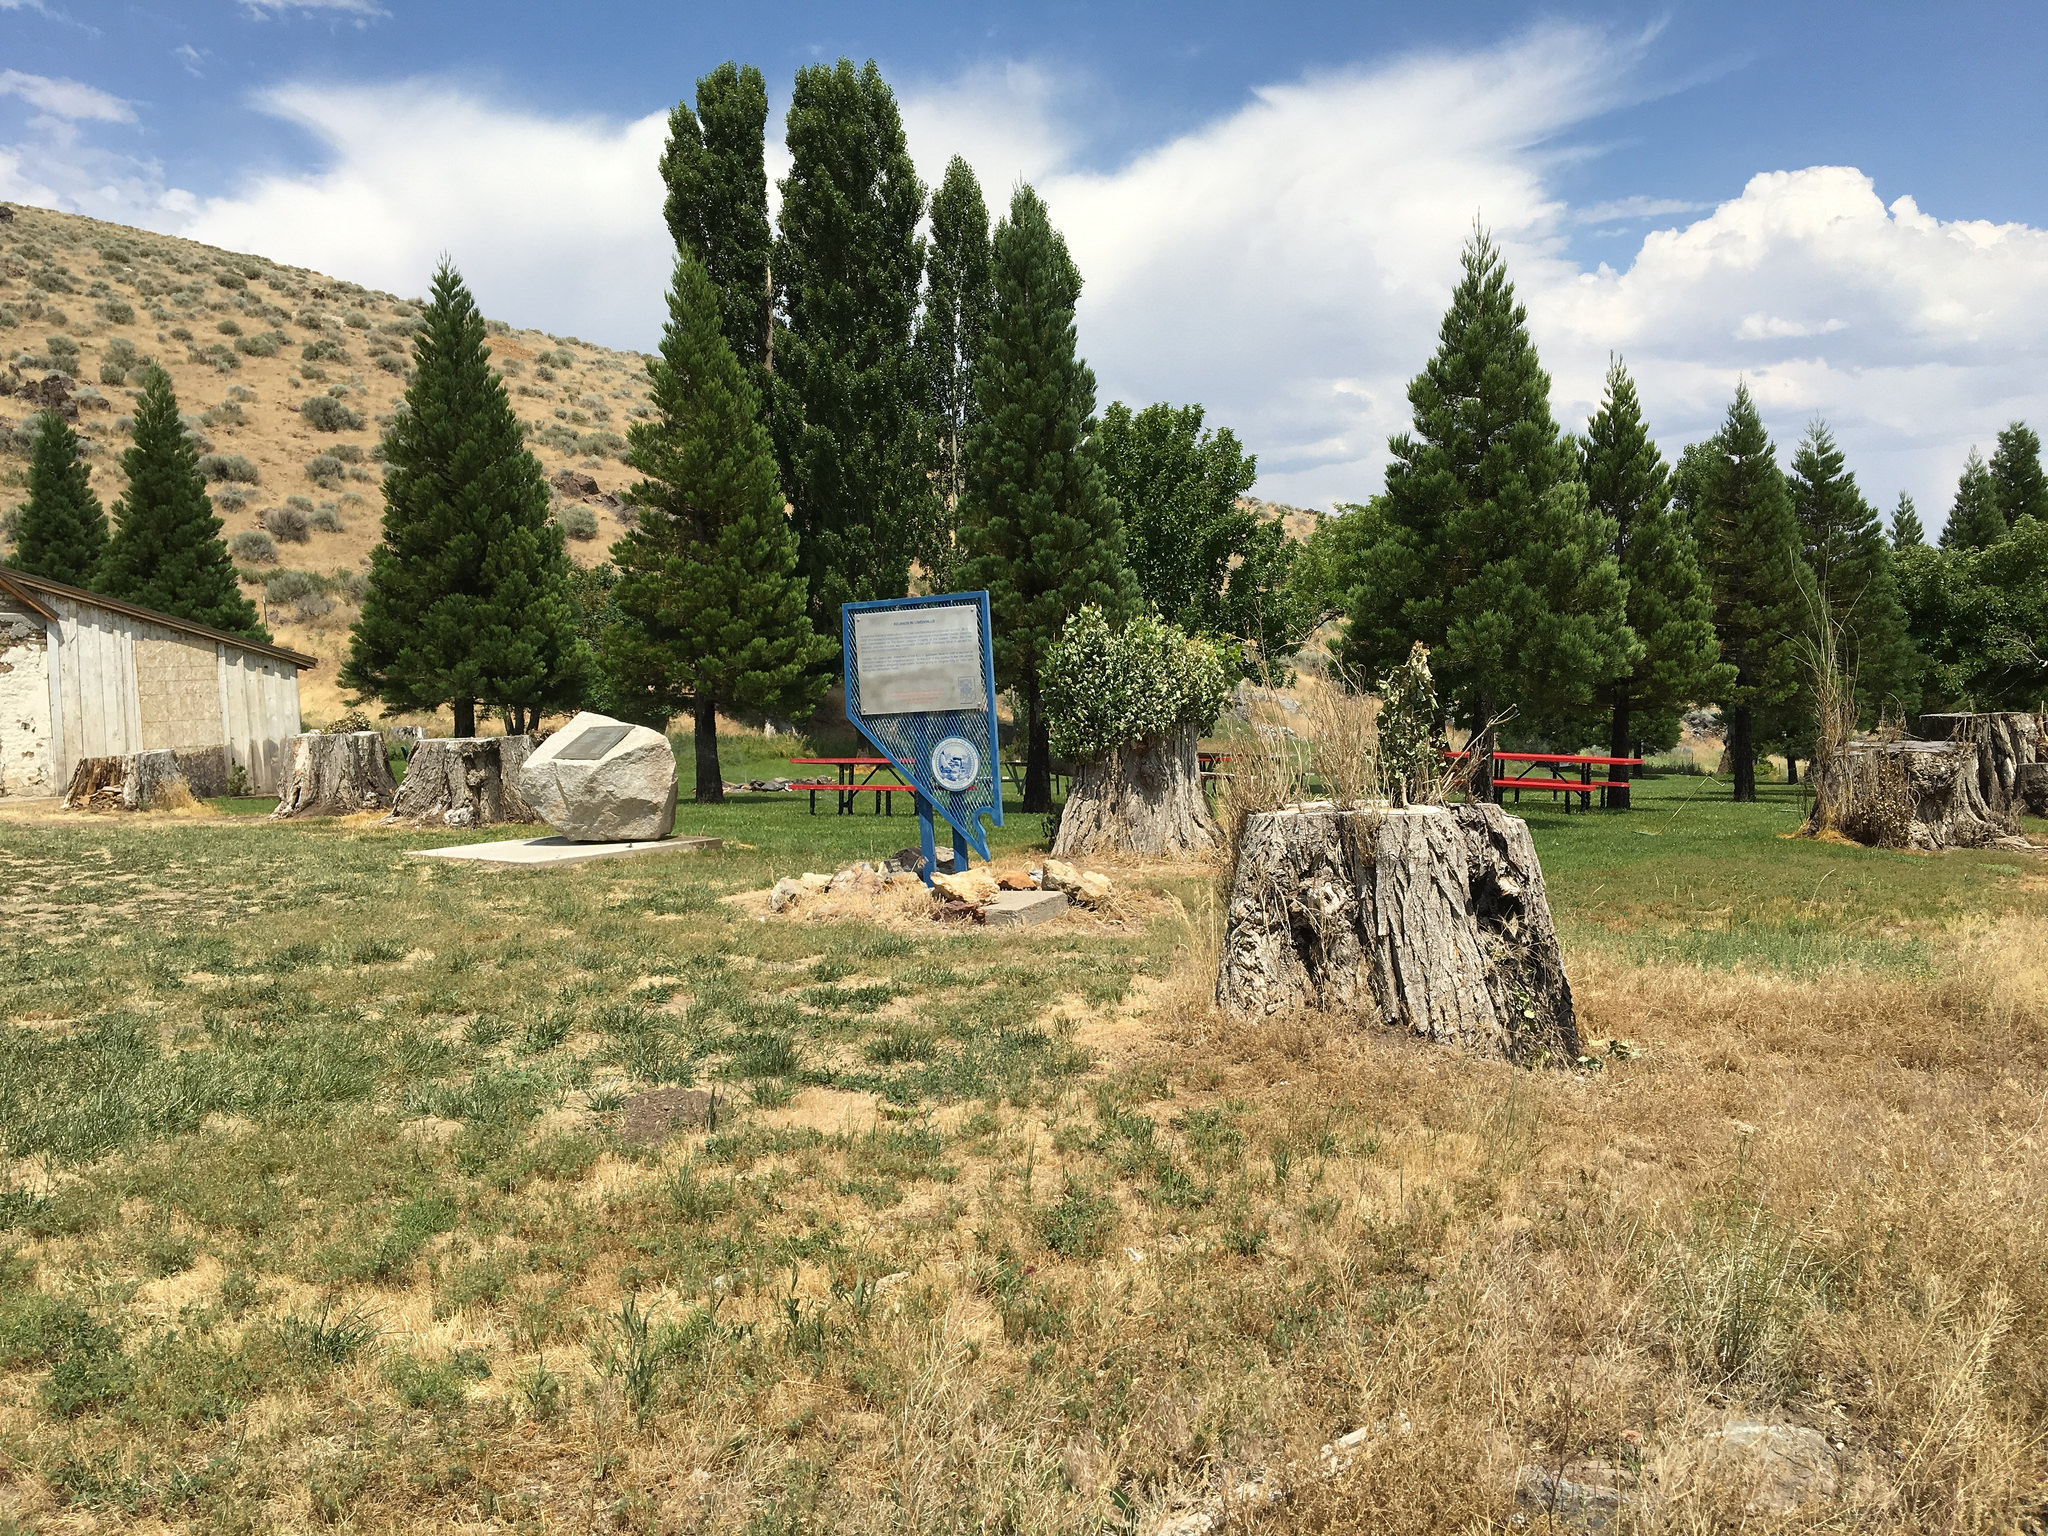 limerick-fire-that-started-july-3-2017-15-miles-northeast-of-lovelock-nevada_35653355901_o